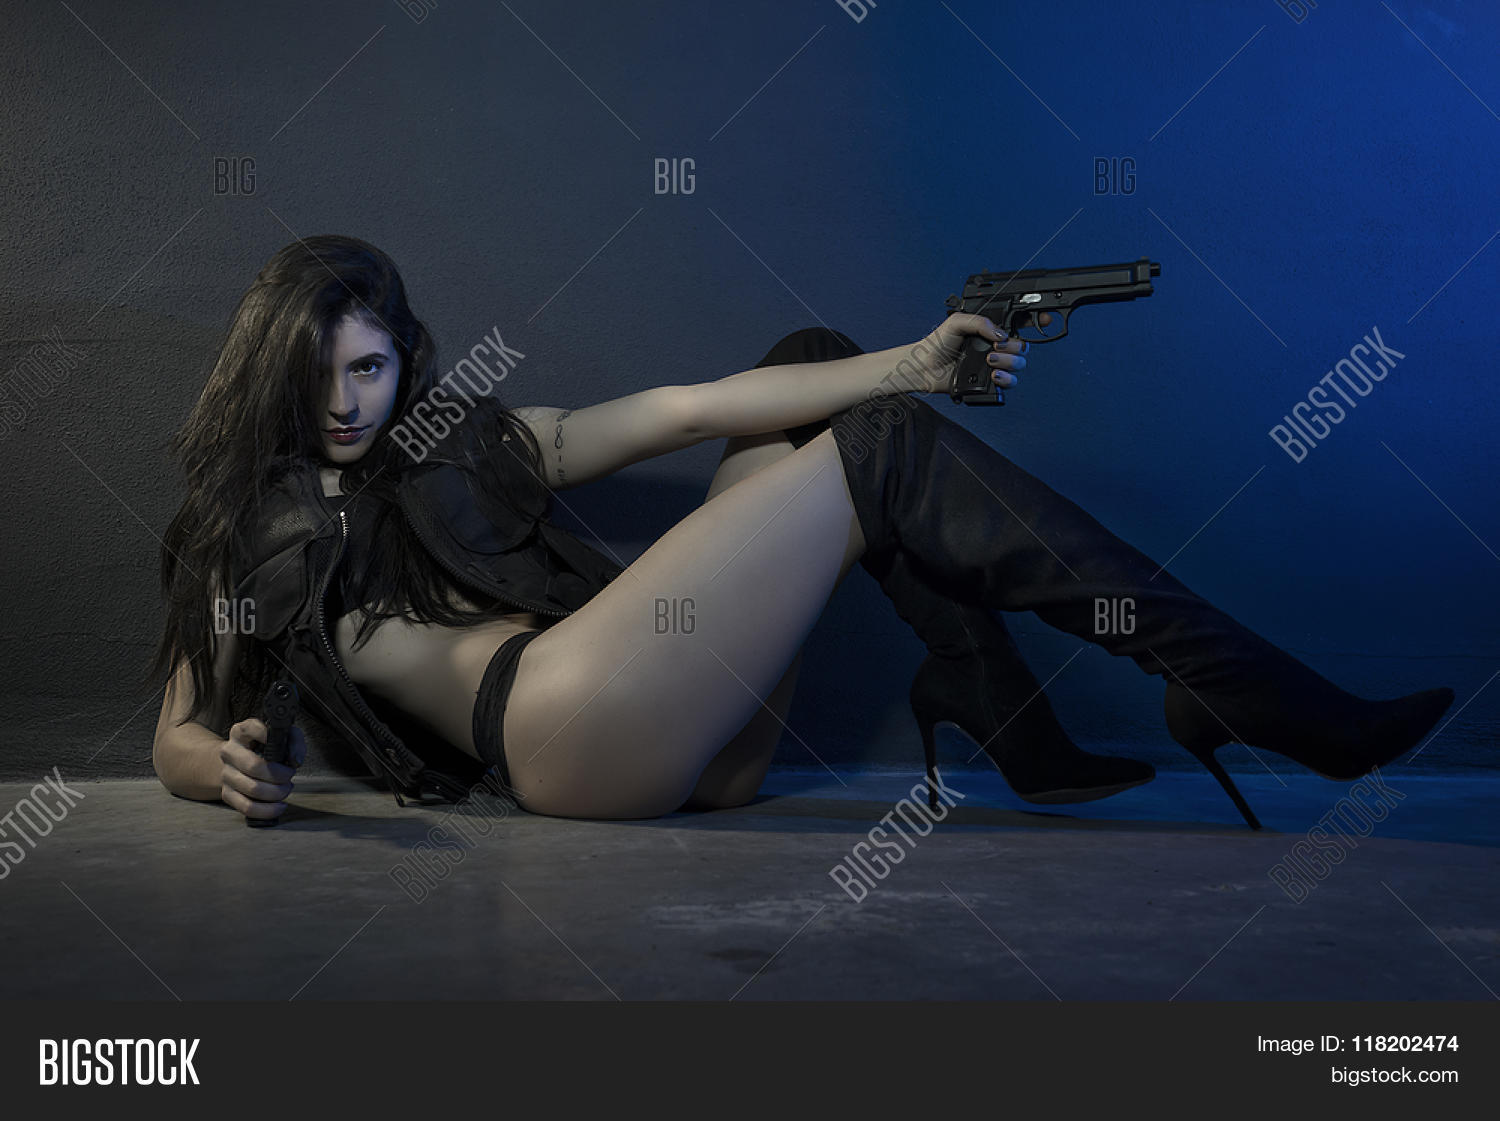 Sexy action girls